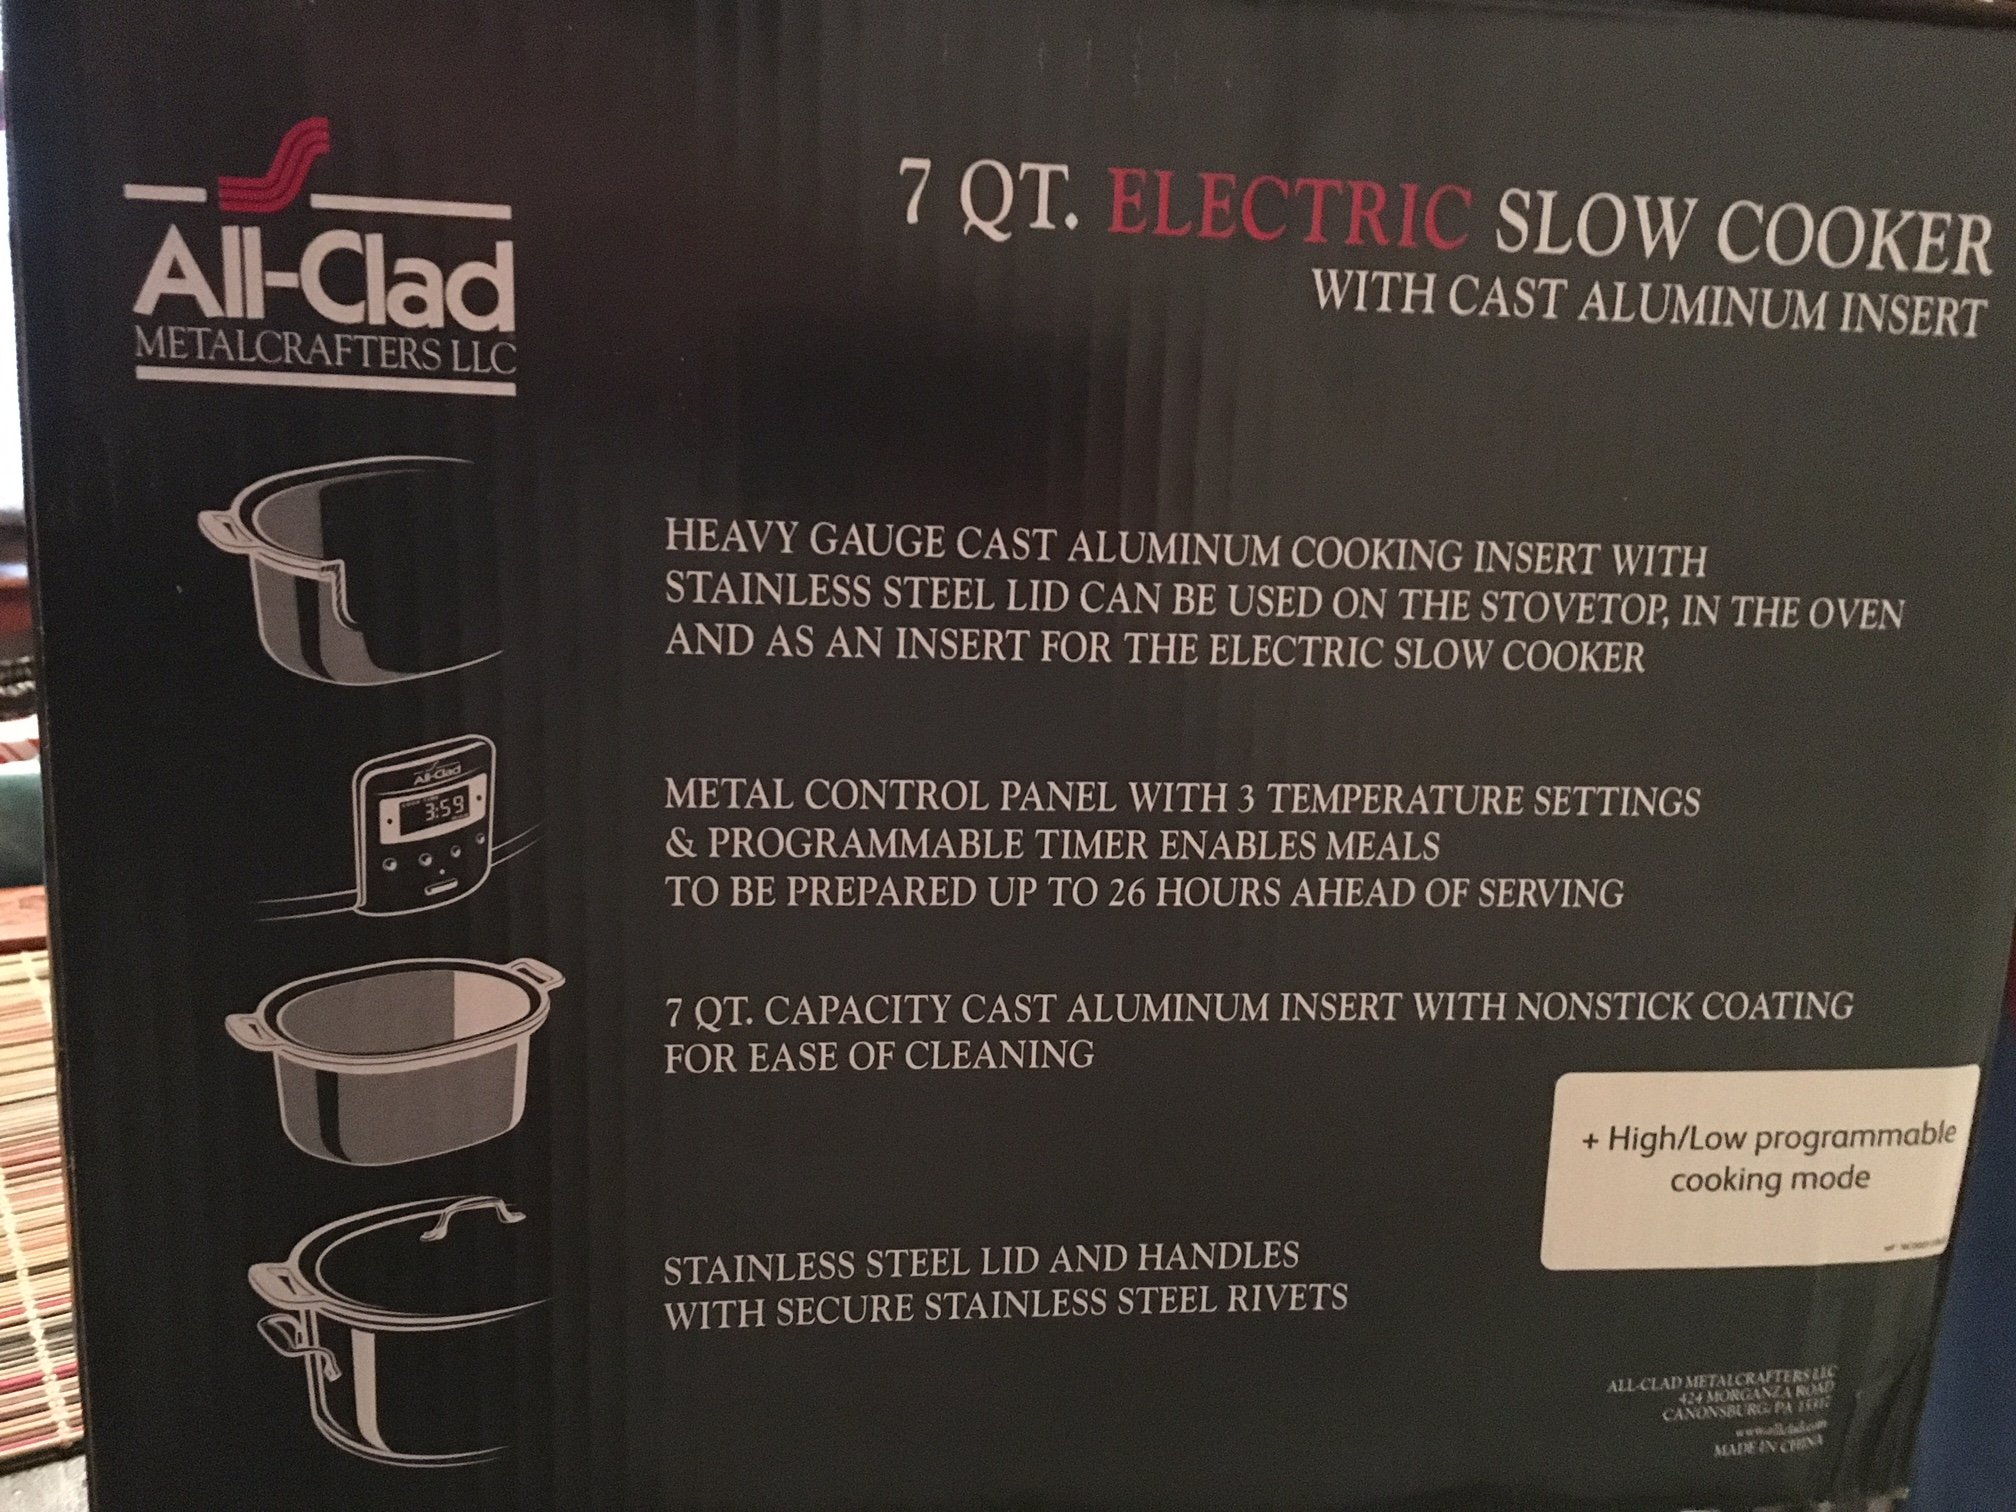 All-Clad Deluxe 7-QT. Slow Cooker by All-clad